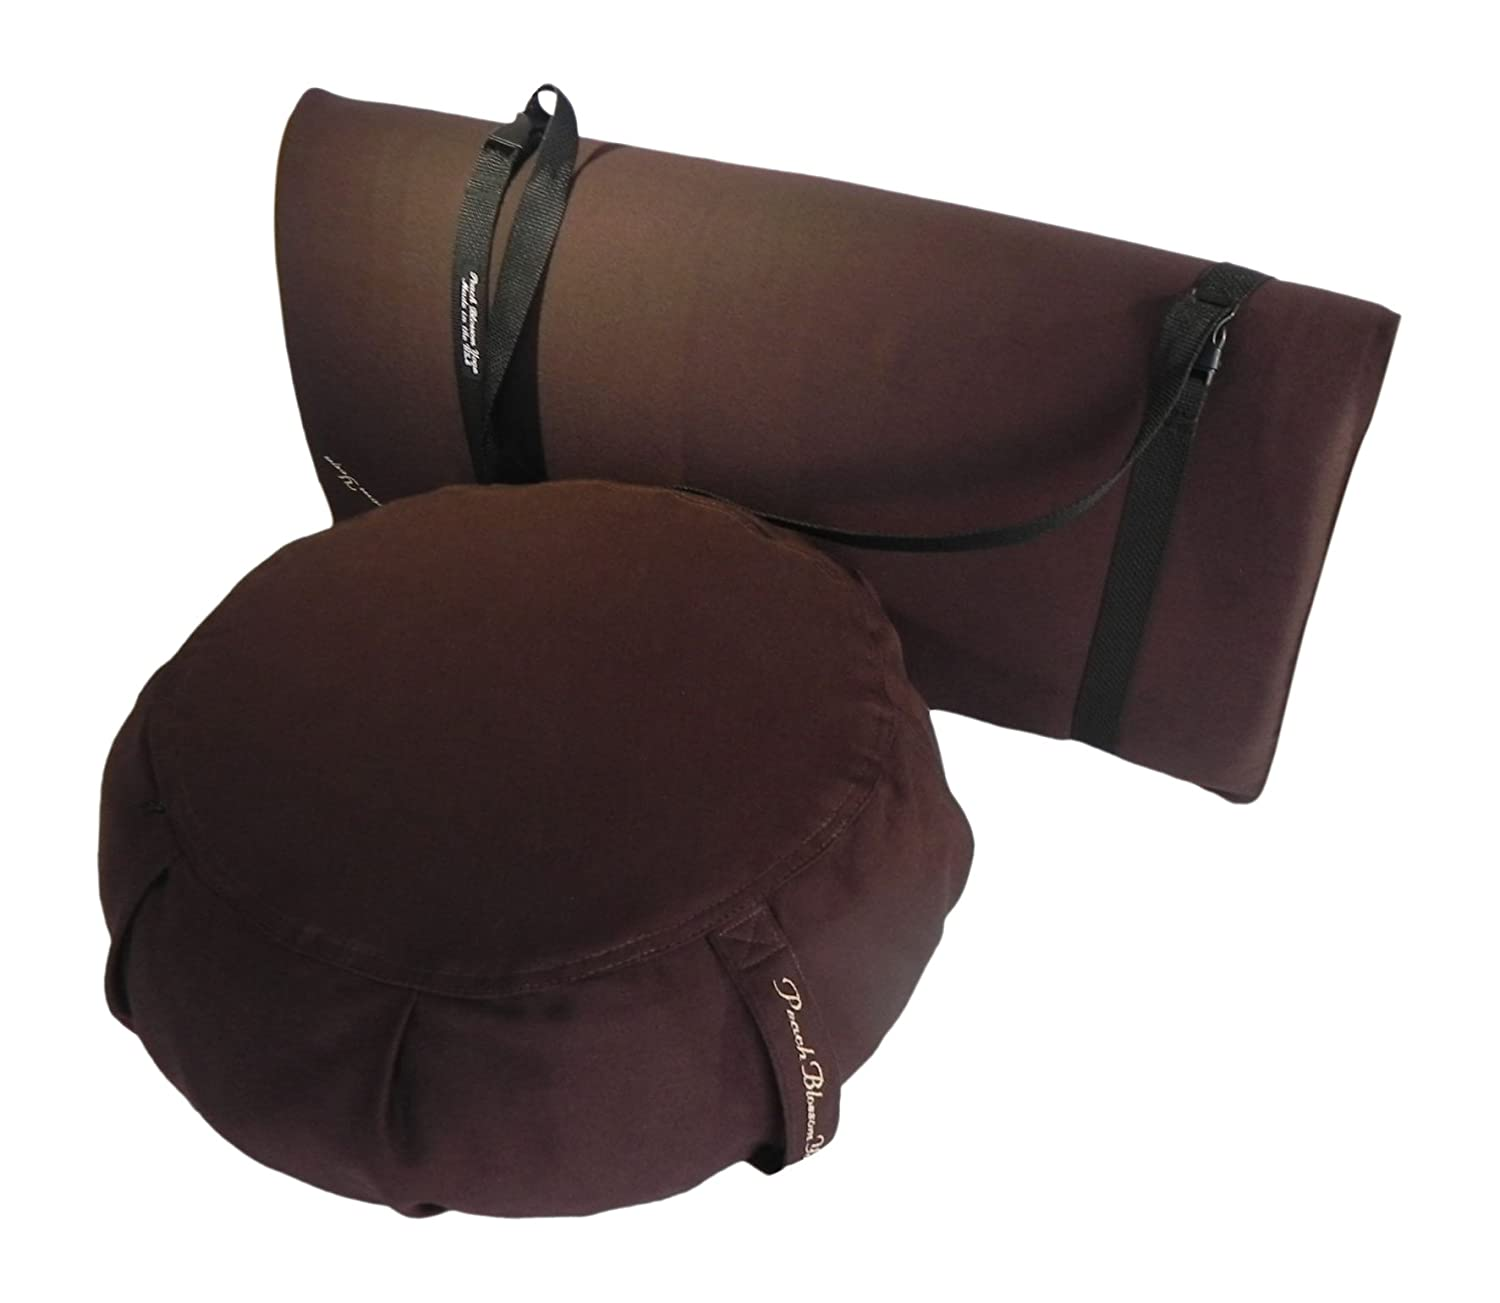 and Double Buckle Strap Zabuton Cushion 26x26 with 3 Foam Removable Covers for Easy Care Zabuton Cushion 26x26 with 3 Foam 11003-A6 Peach Blossom Yoga 3 Piece Restorative Yoga Set Includes Zafu Meditation Pillow Buckwheat Hull Filled